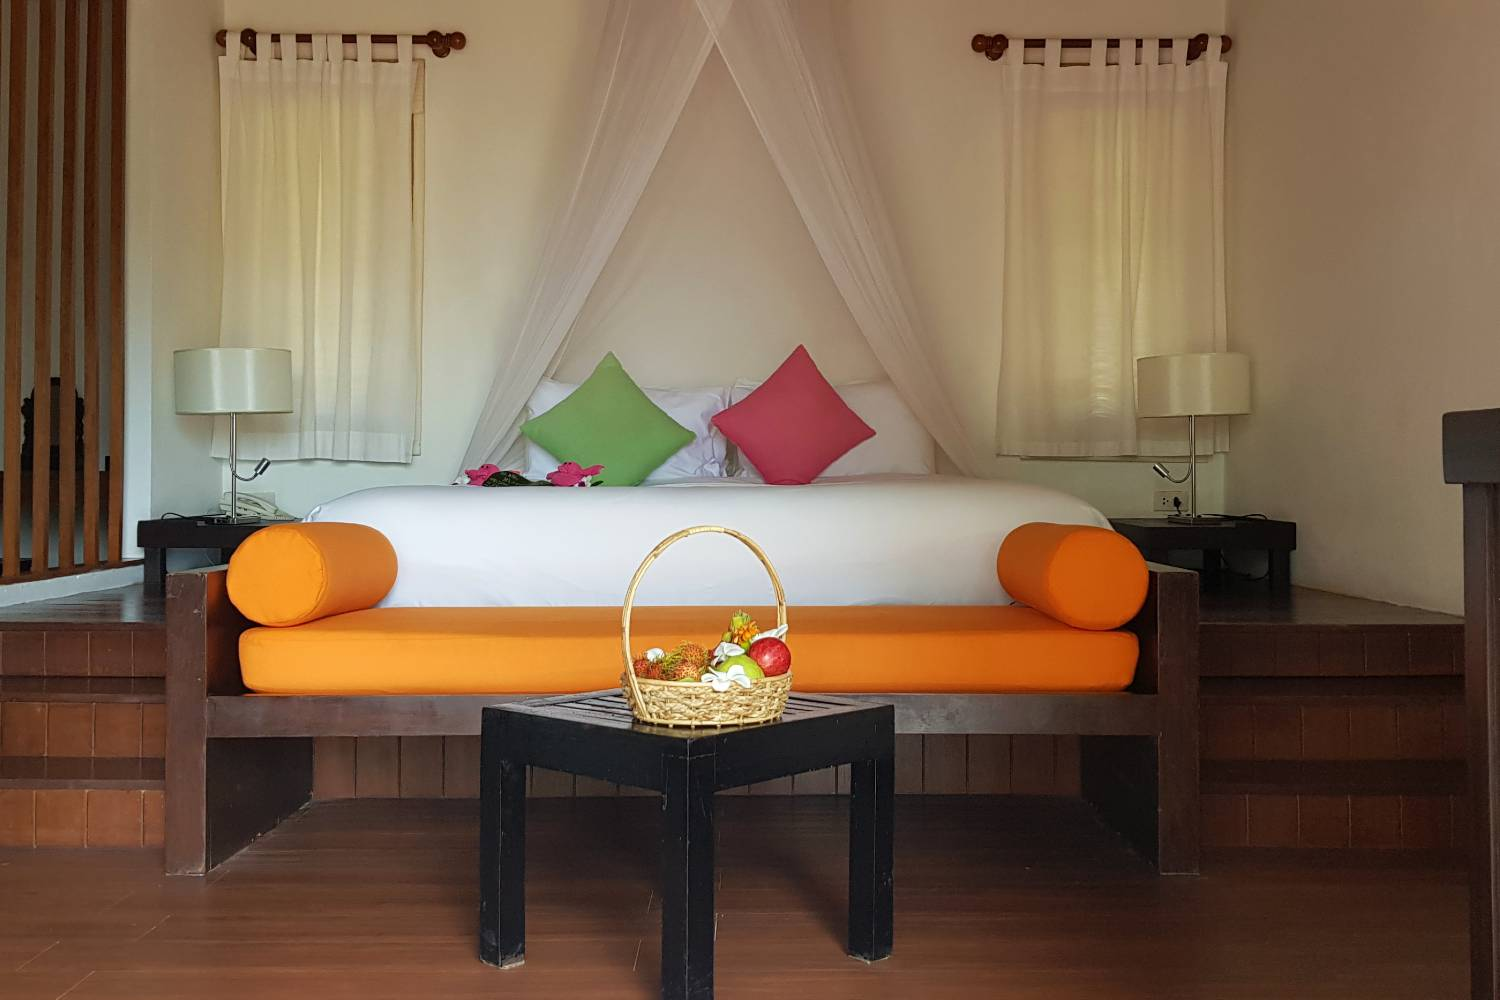 Bedroom of the Deluxe Pool Villa at the GLOW Elixir Resort